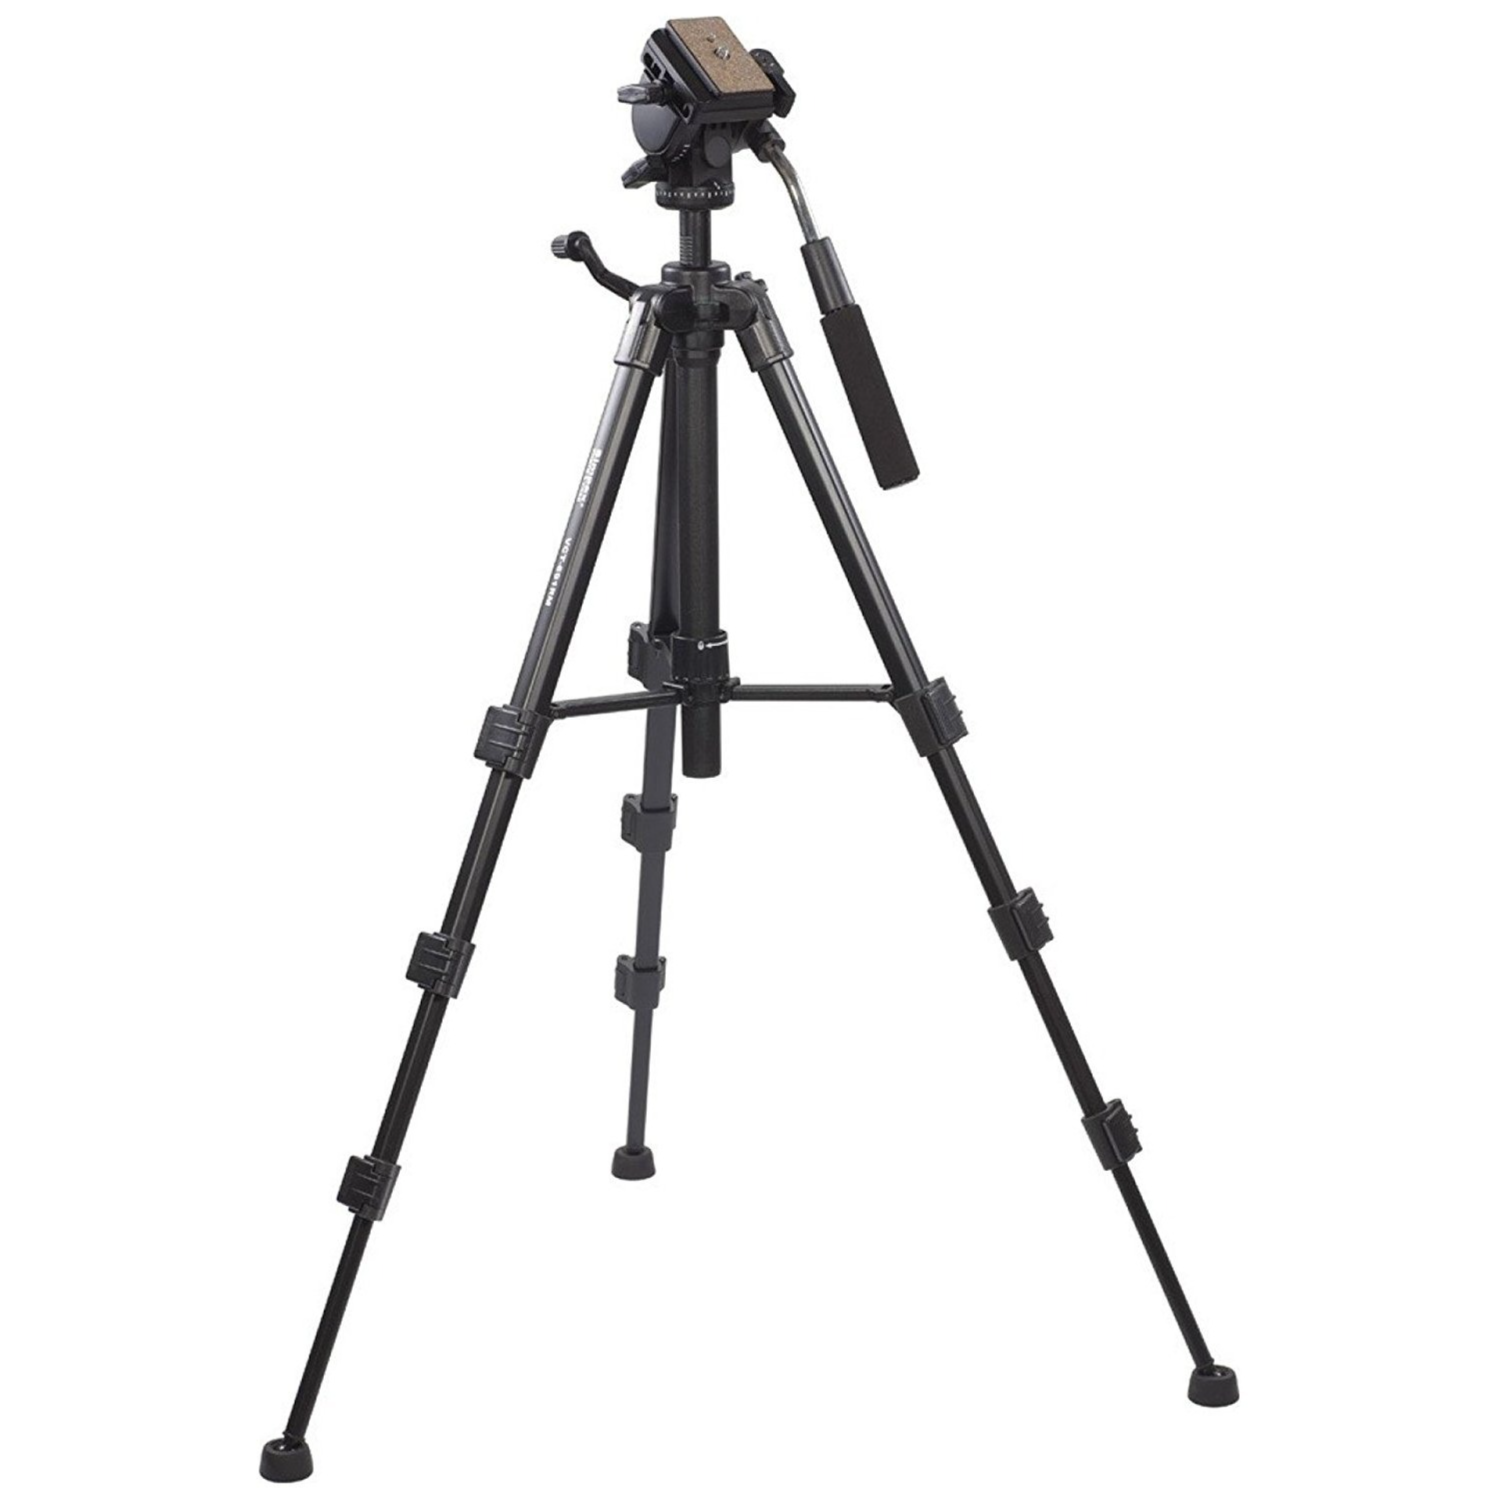 Simpex 690 Tripod with Free Universal Mobile Holder For Tripod : Amazon.in: Electronics